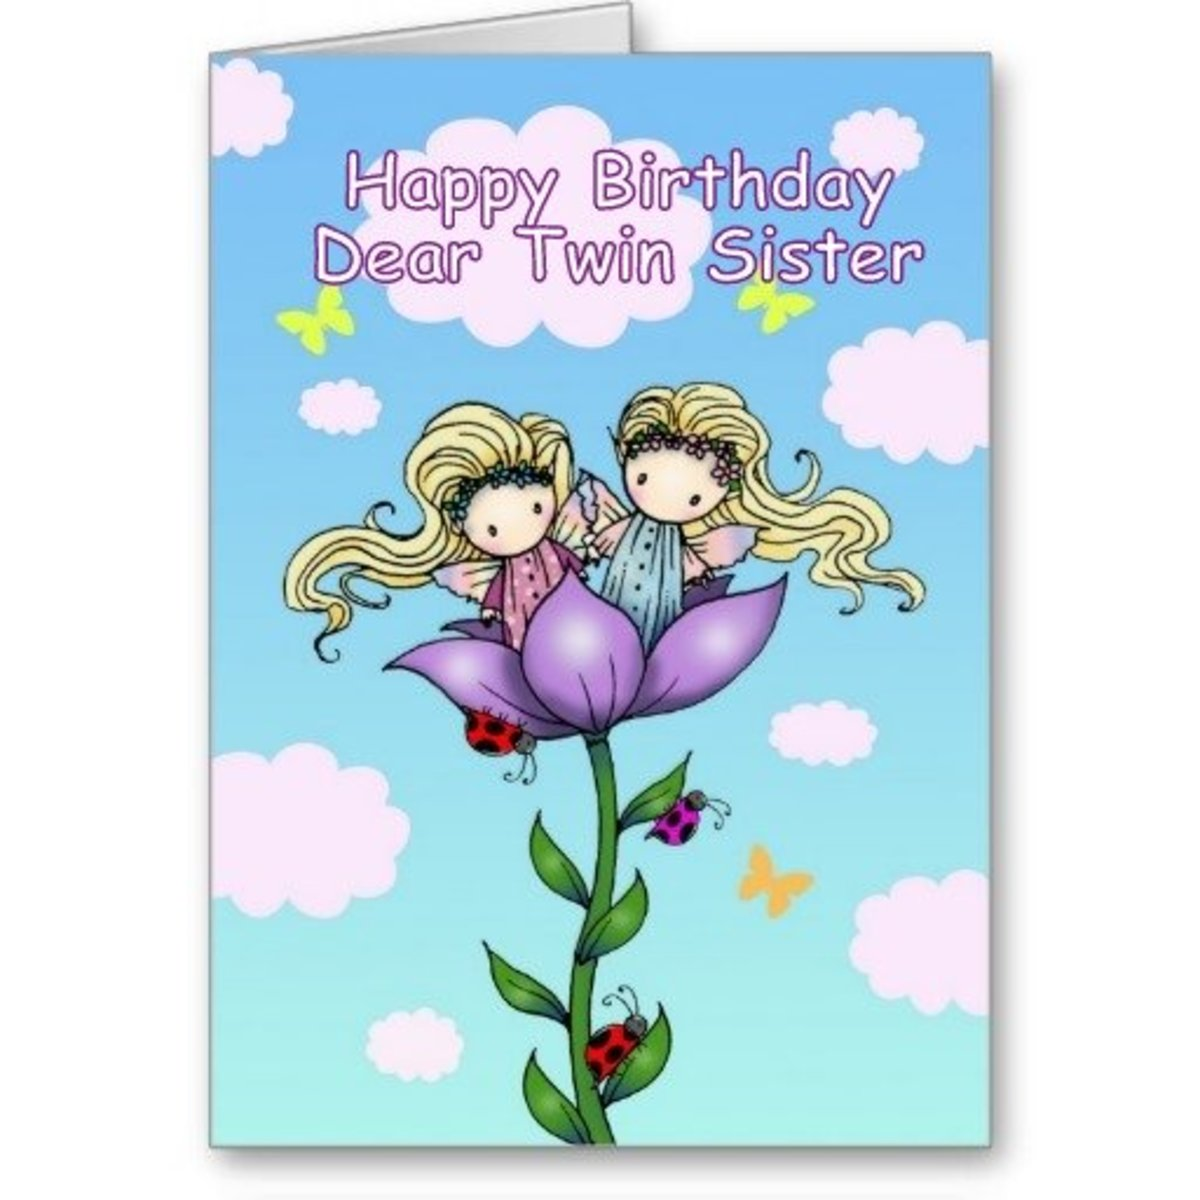 Funny birthday quotes for twin sister birthday card for twin sister funny birthday quotes for twin sister birthday card for twin sisters bookmarktalkfo Images